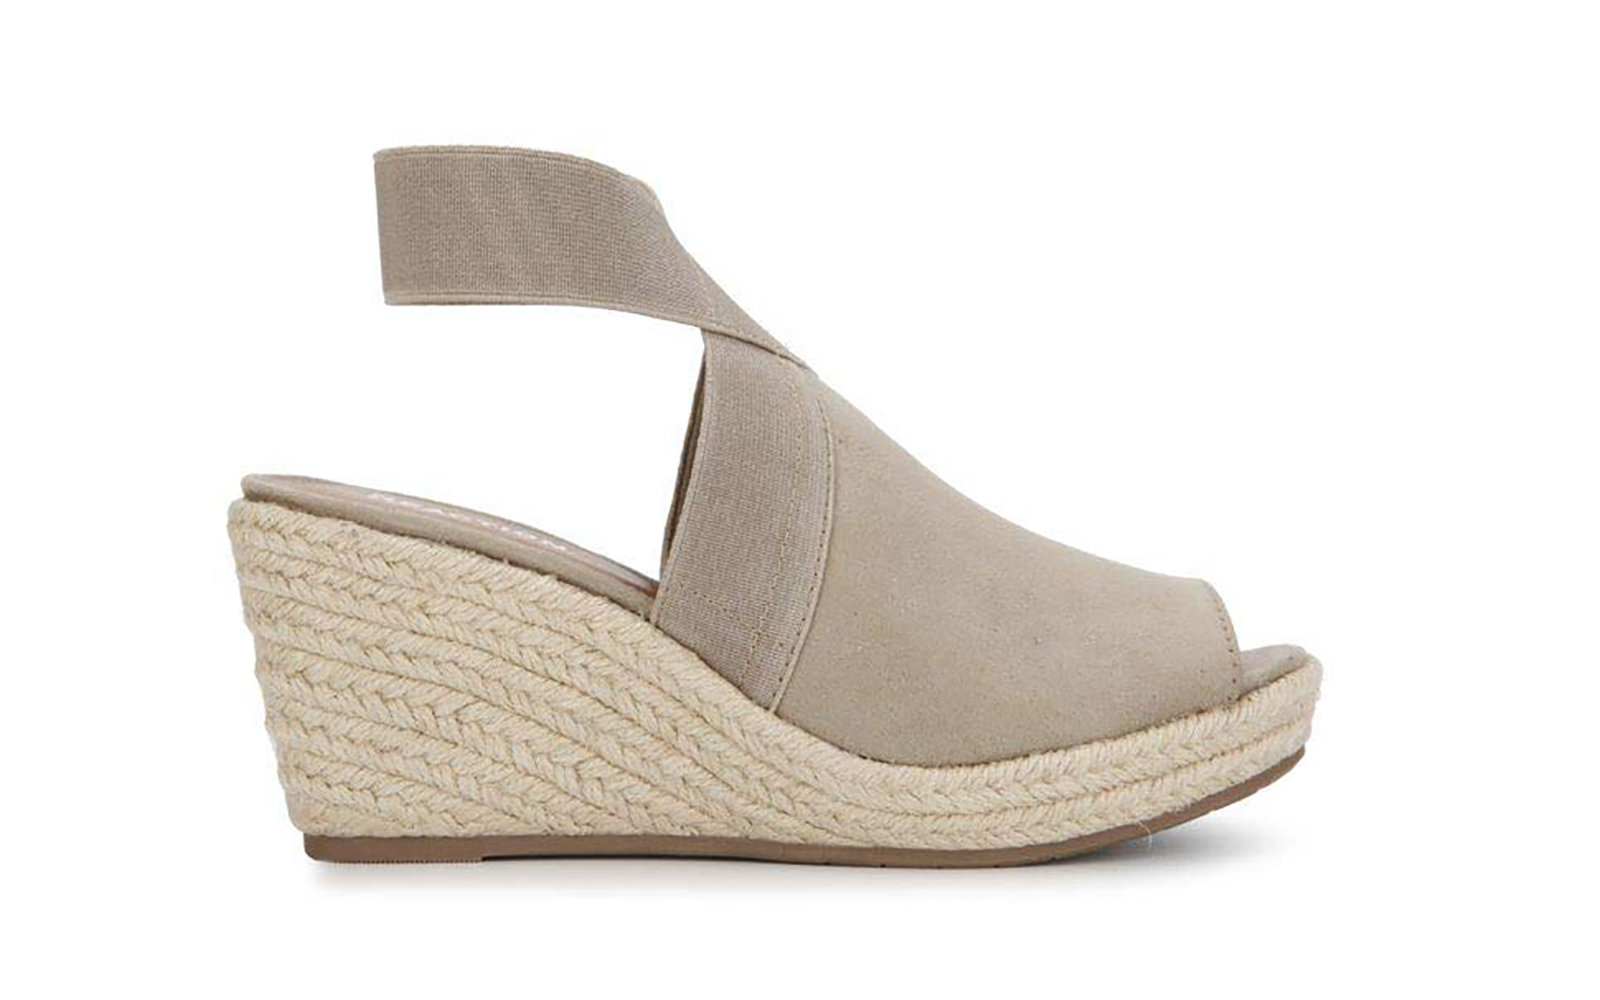 Kenneth Cole REACTION Women's Carrie Espadrille Wedge Sandal